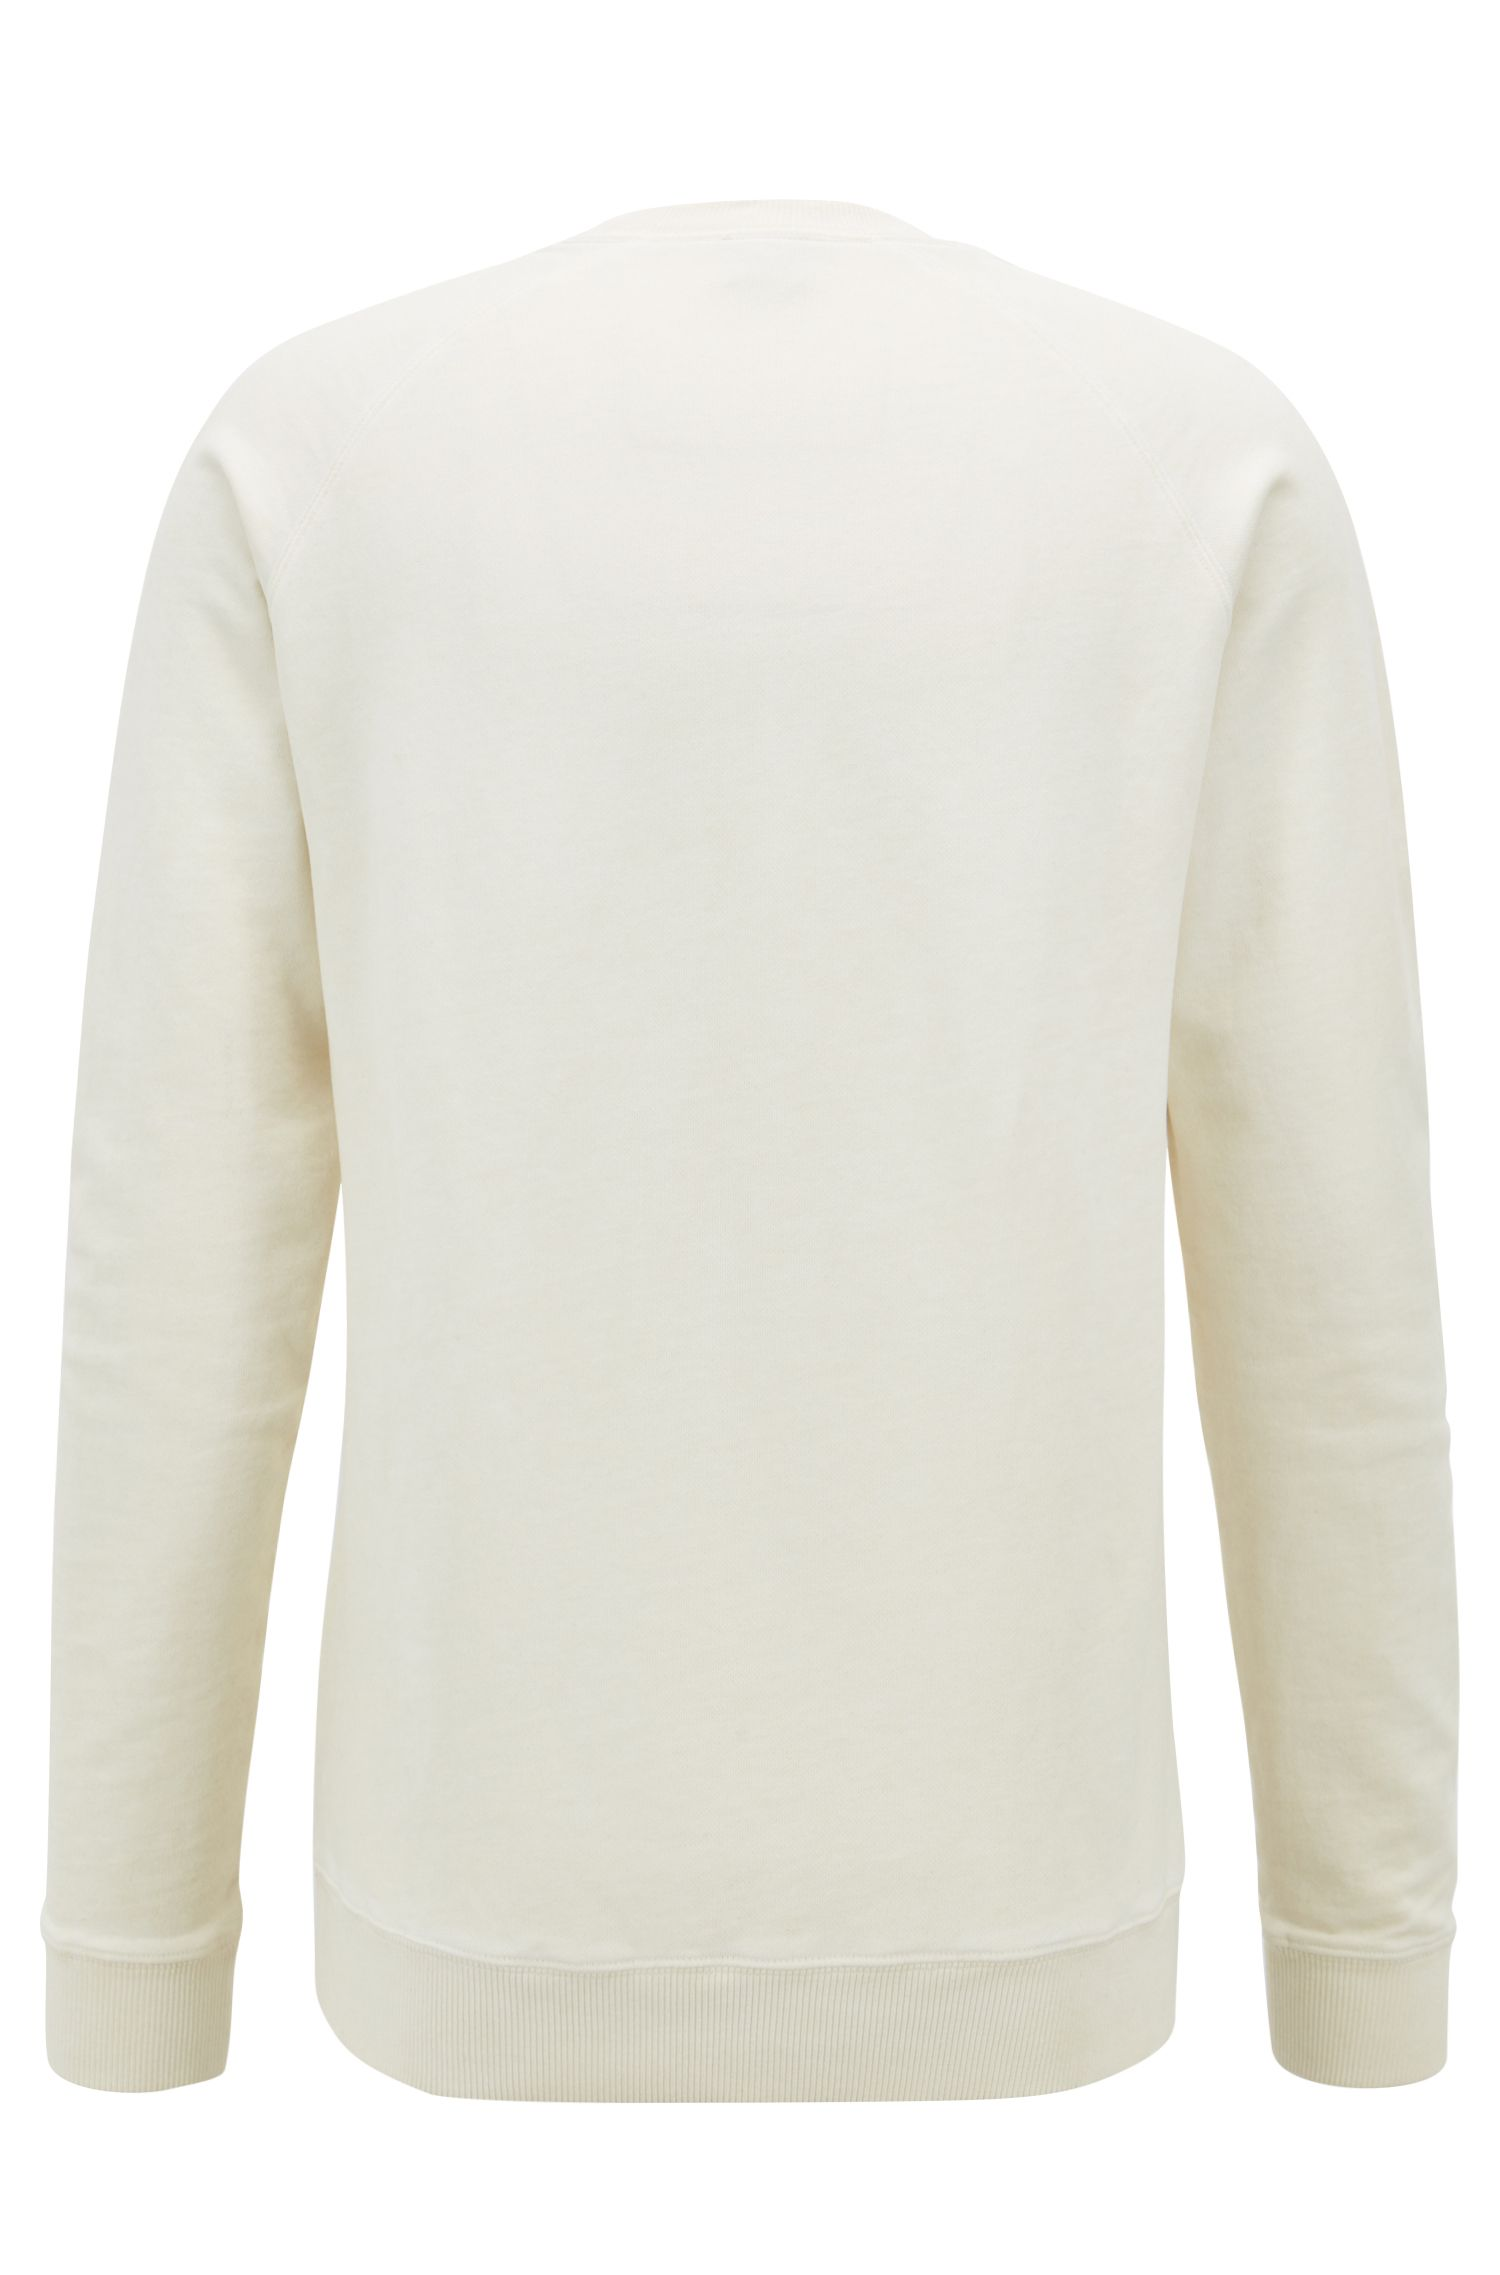 Sweat en molleton French Terry à logo brodé, Beige clair